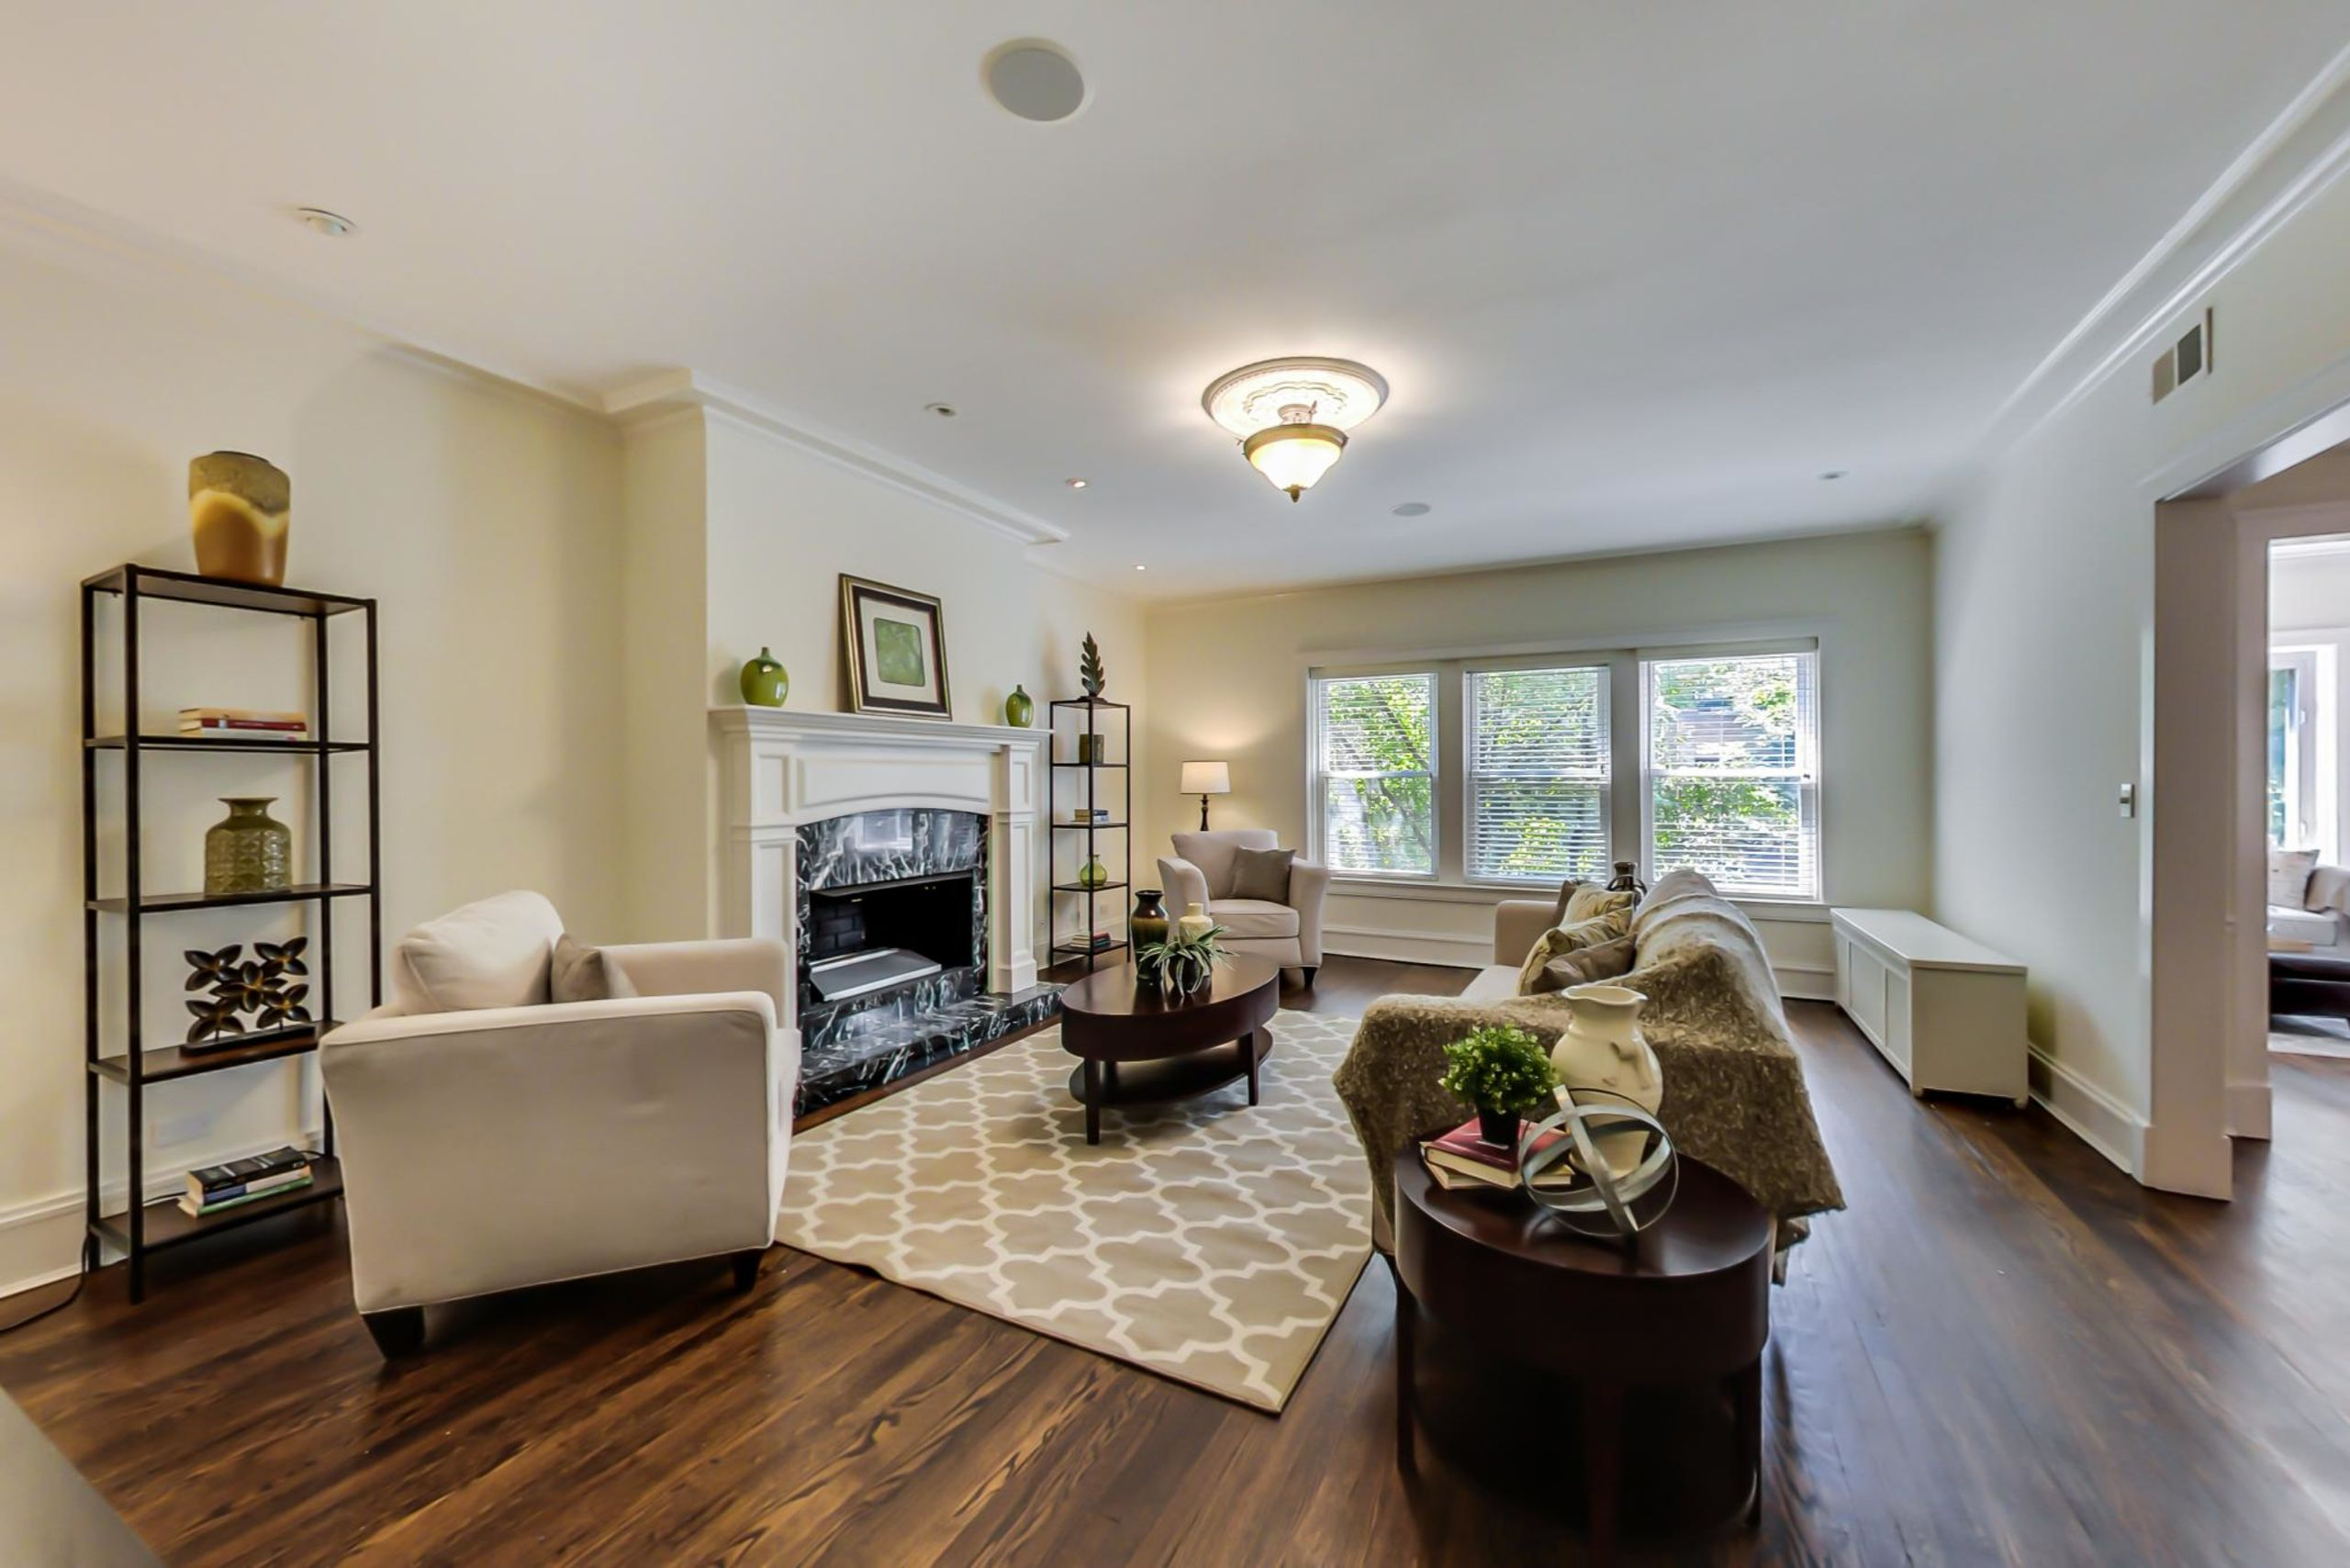 1116 W. Columbia #2W - For Sale